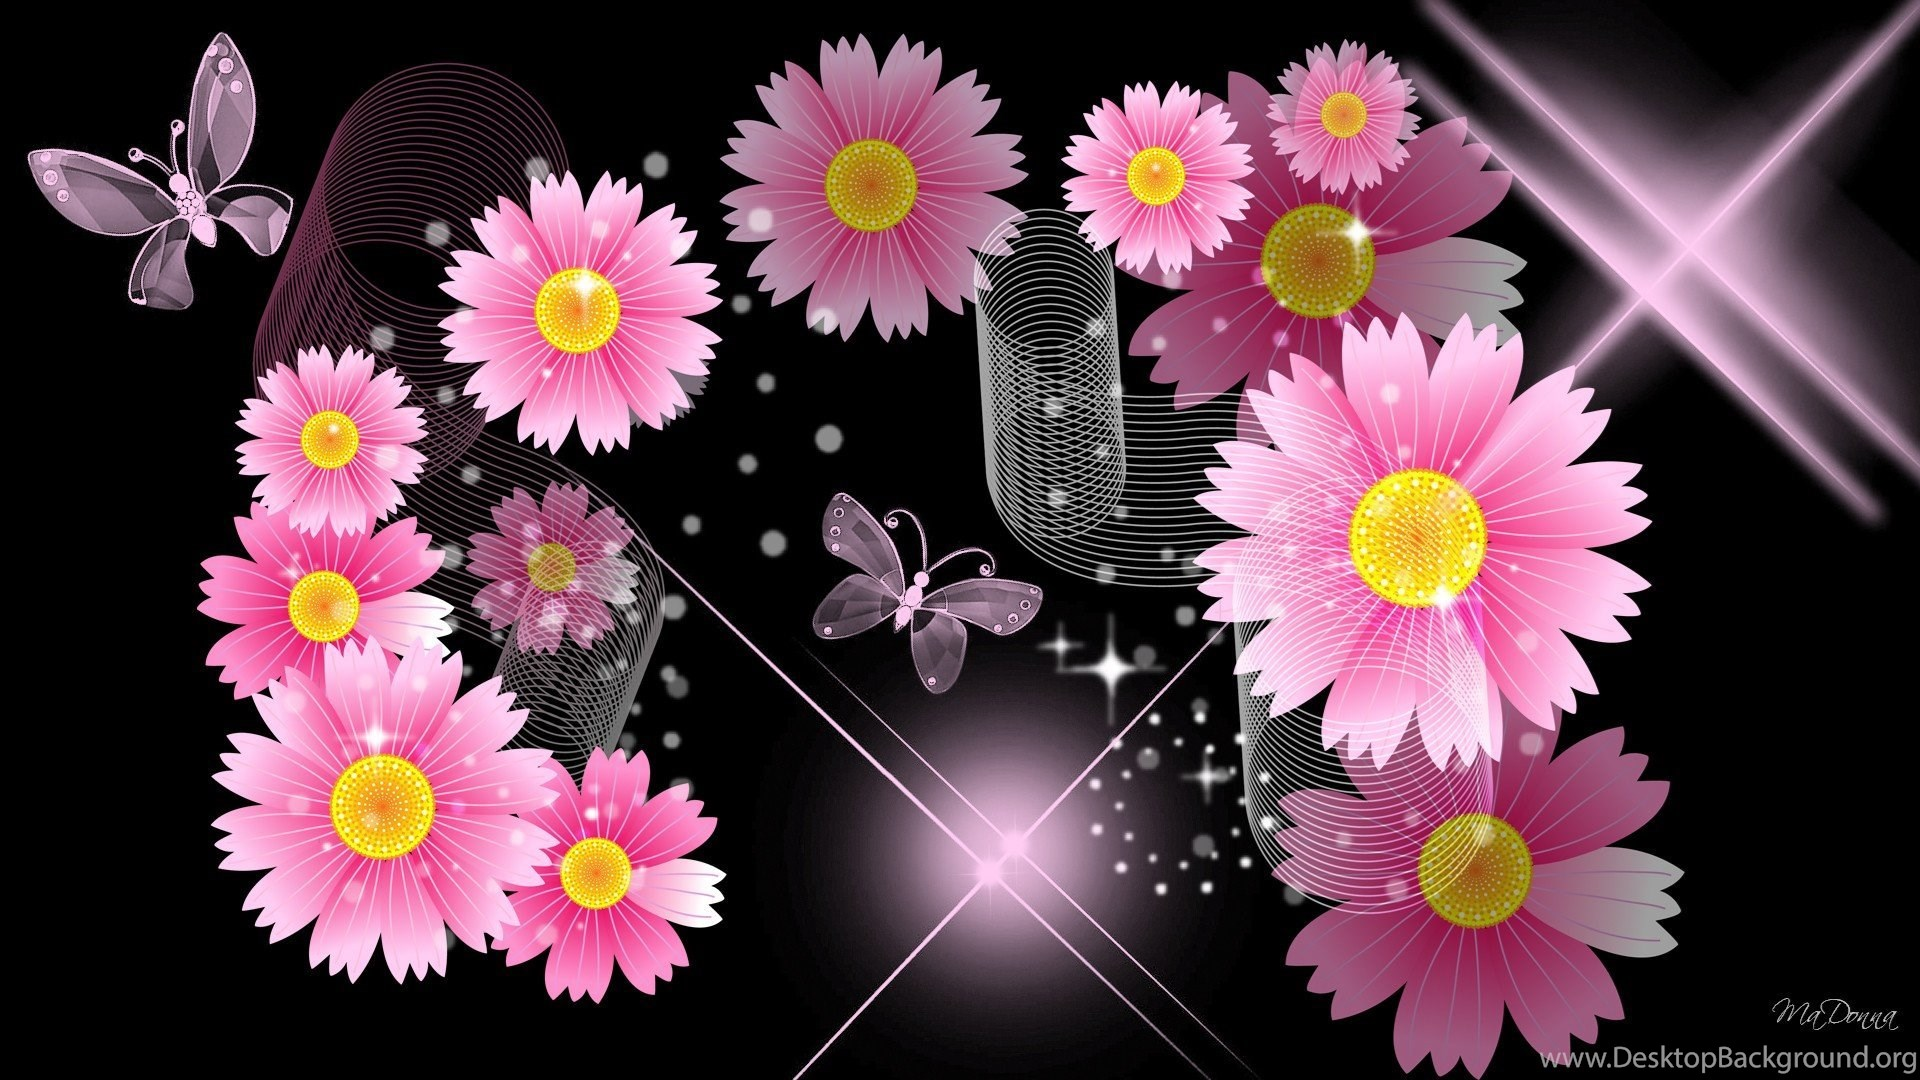 Black And Pink Flower Wallpapers Walldevil Best Free Hd Desktop